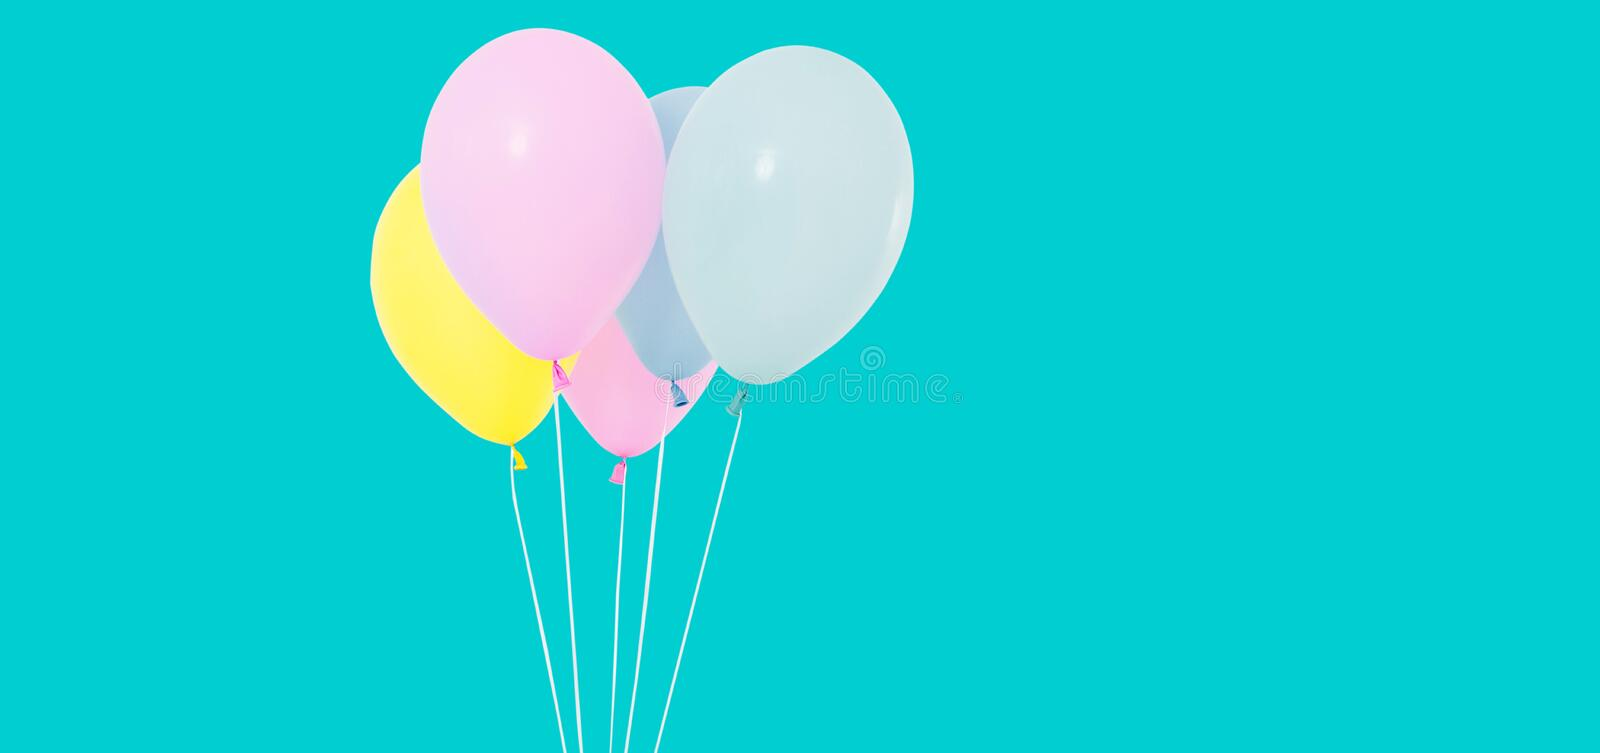 Bunch of colorful balloons on background - copy space royalty free stock photo